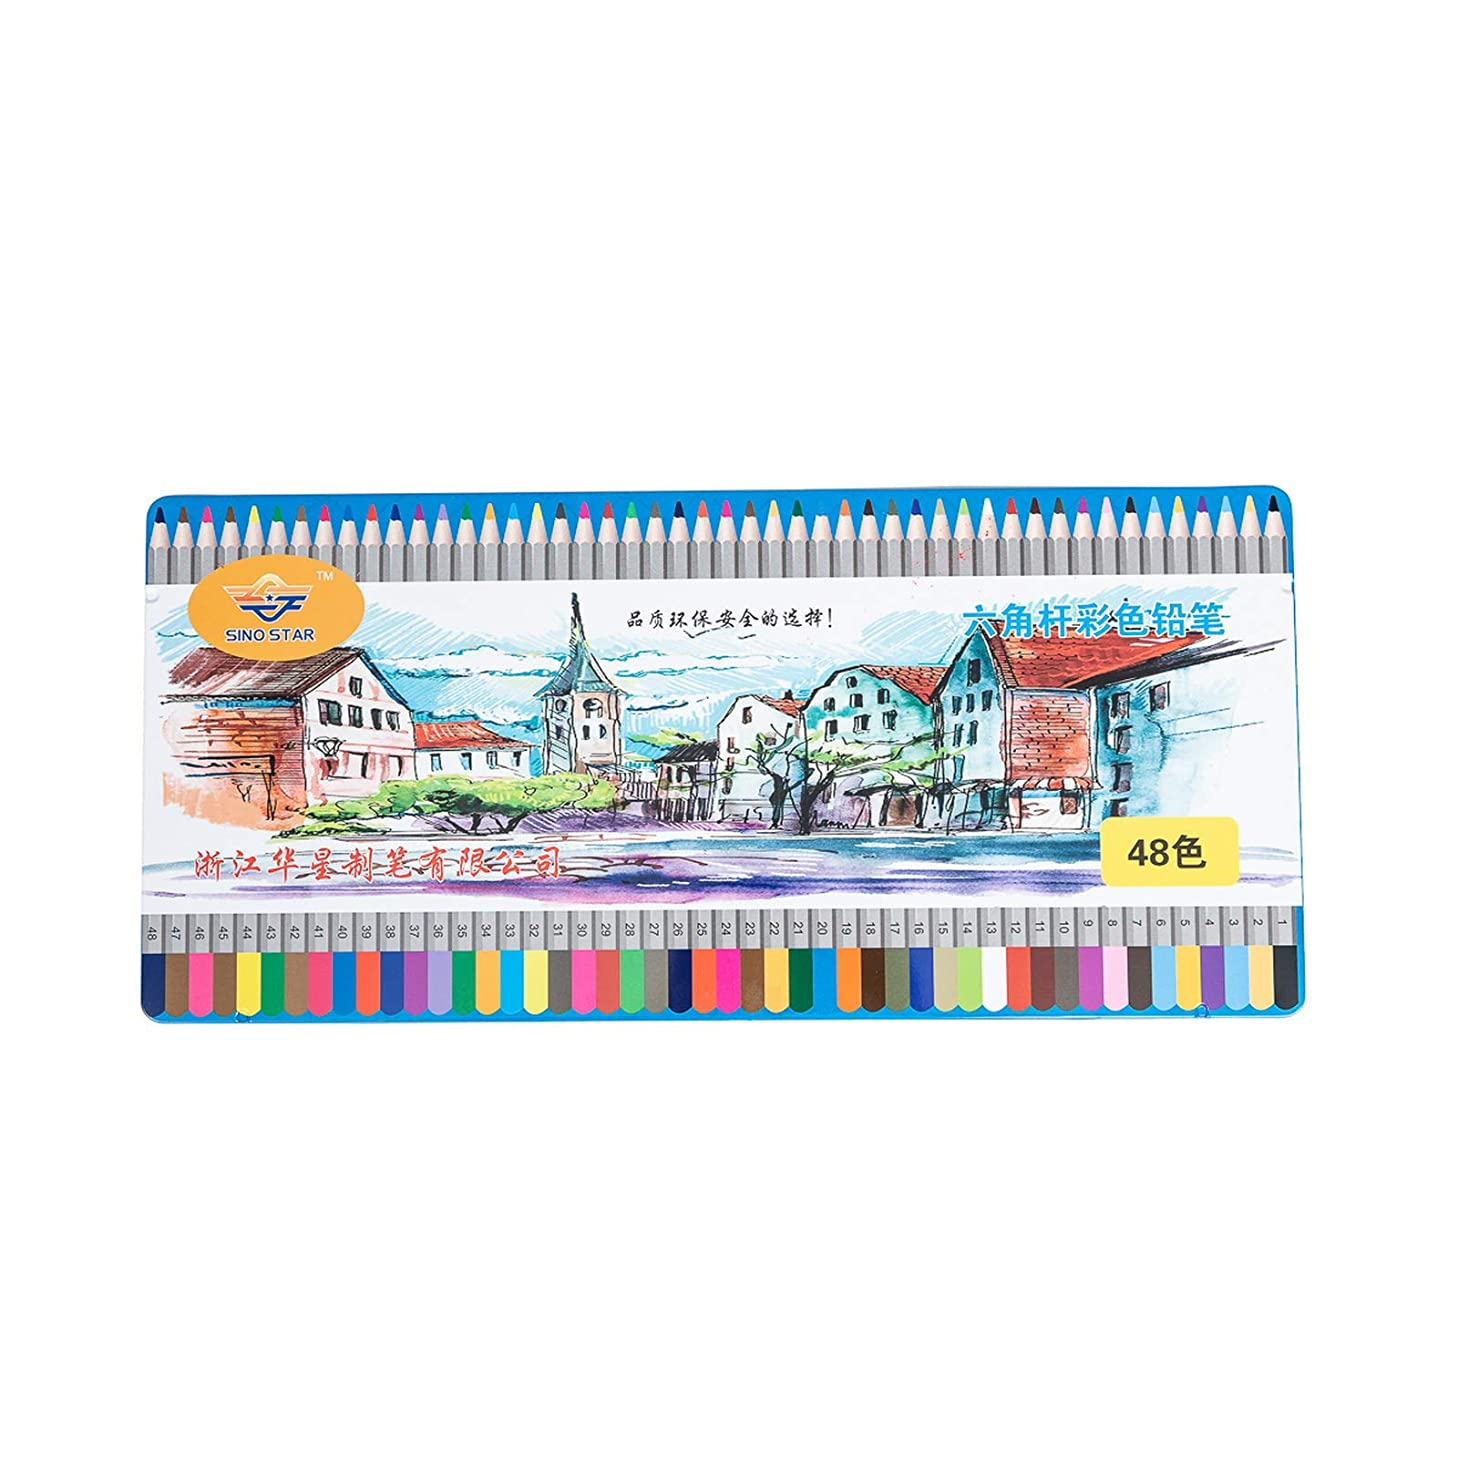 Asian Home SINO Star Colored Pencils for Artists of All Levels, Drawing, Sketching, Coloring, Firm Grip, Vibrant Colors, 48 Count